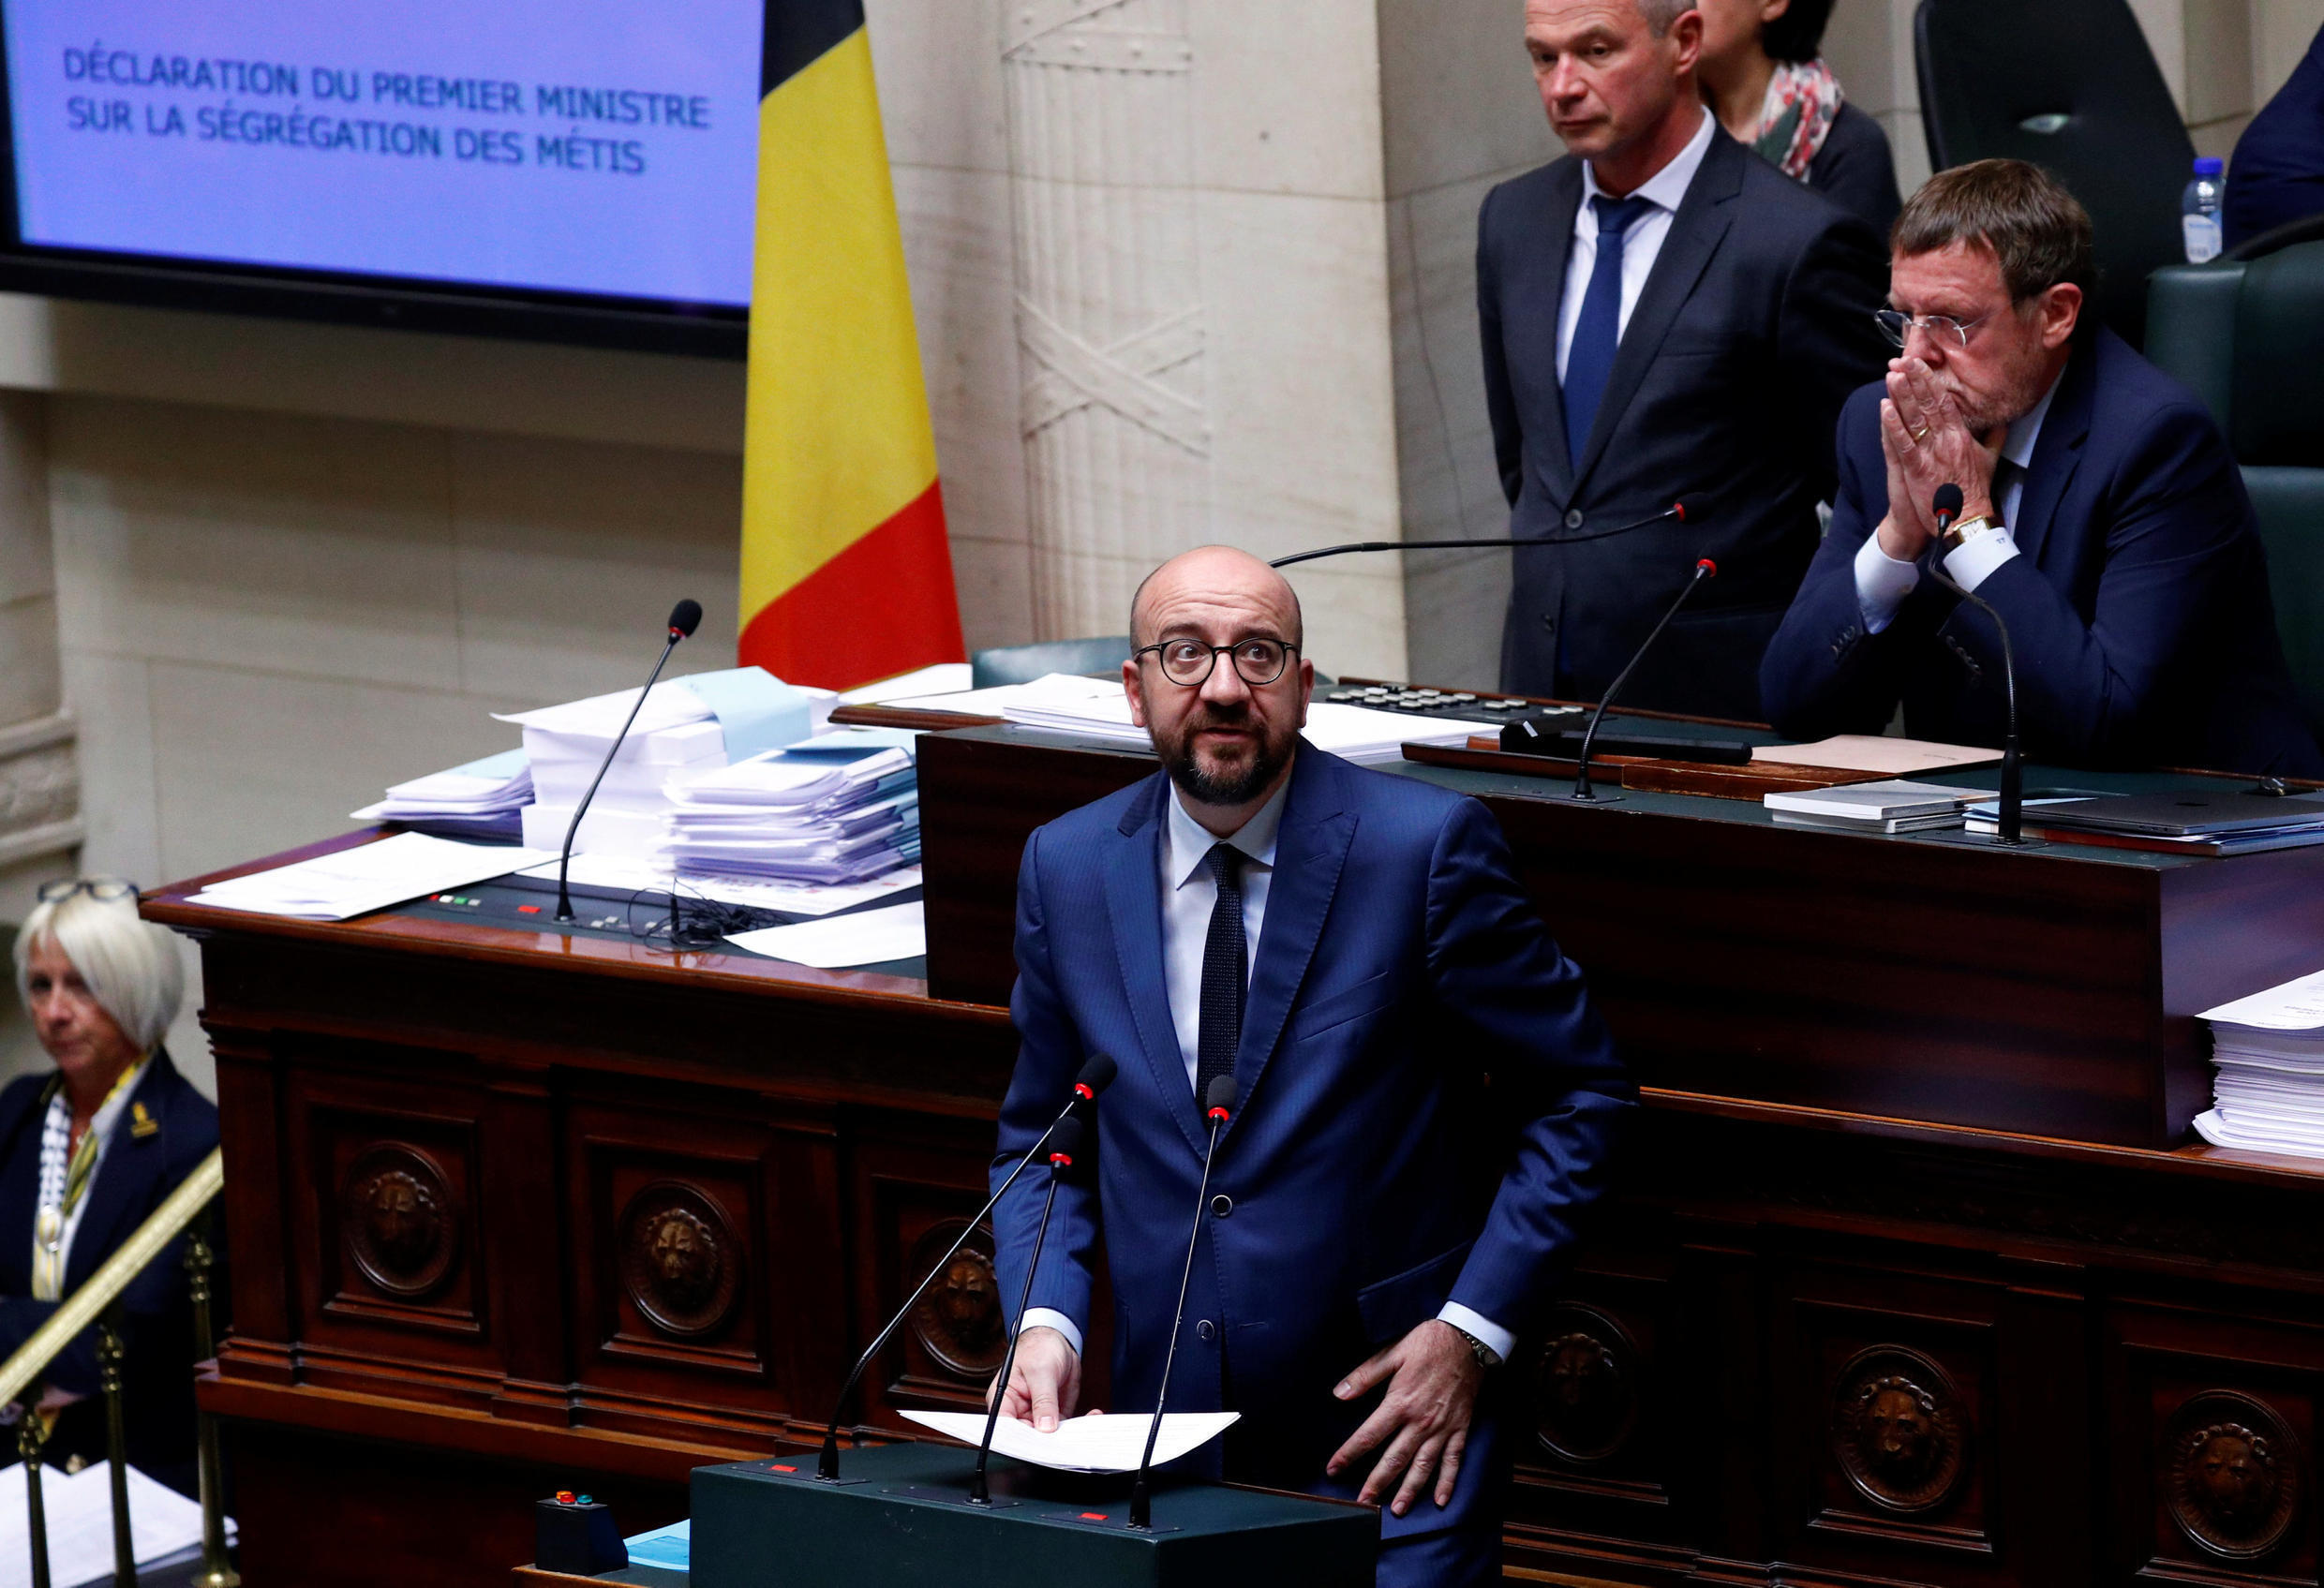 Belgium's Prime Minister Charles Michel appologises for the kidnapping of Metis children, April 4th 2019